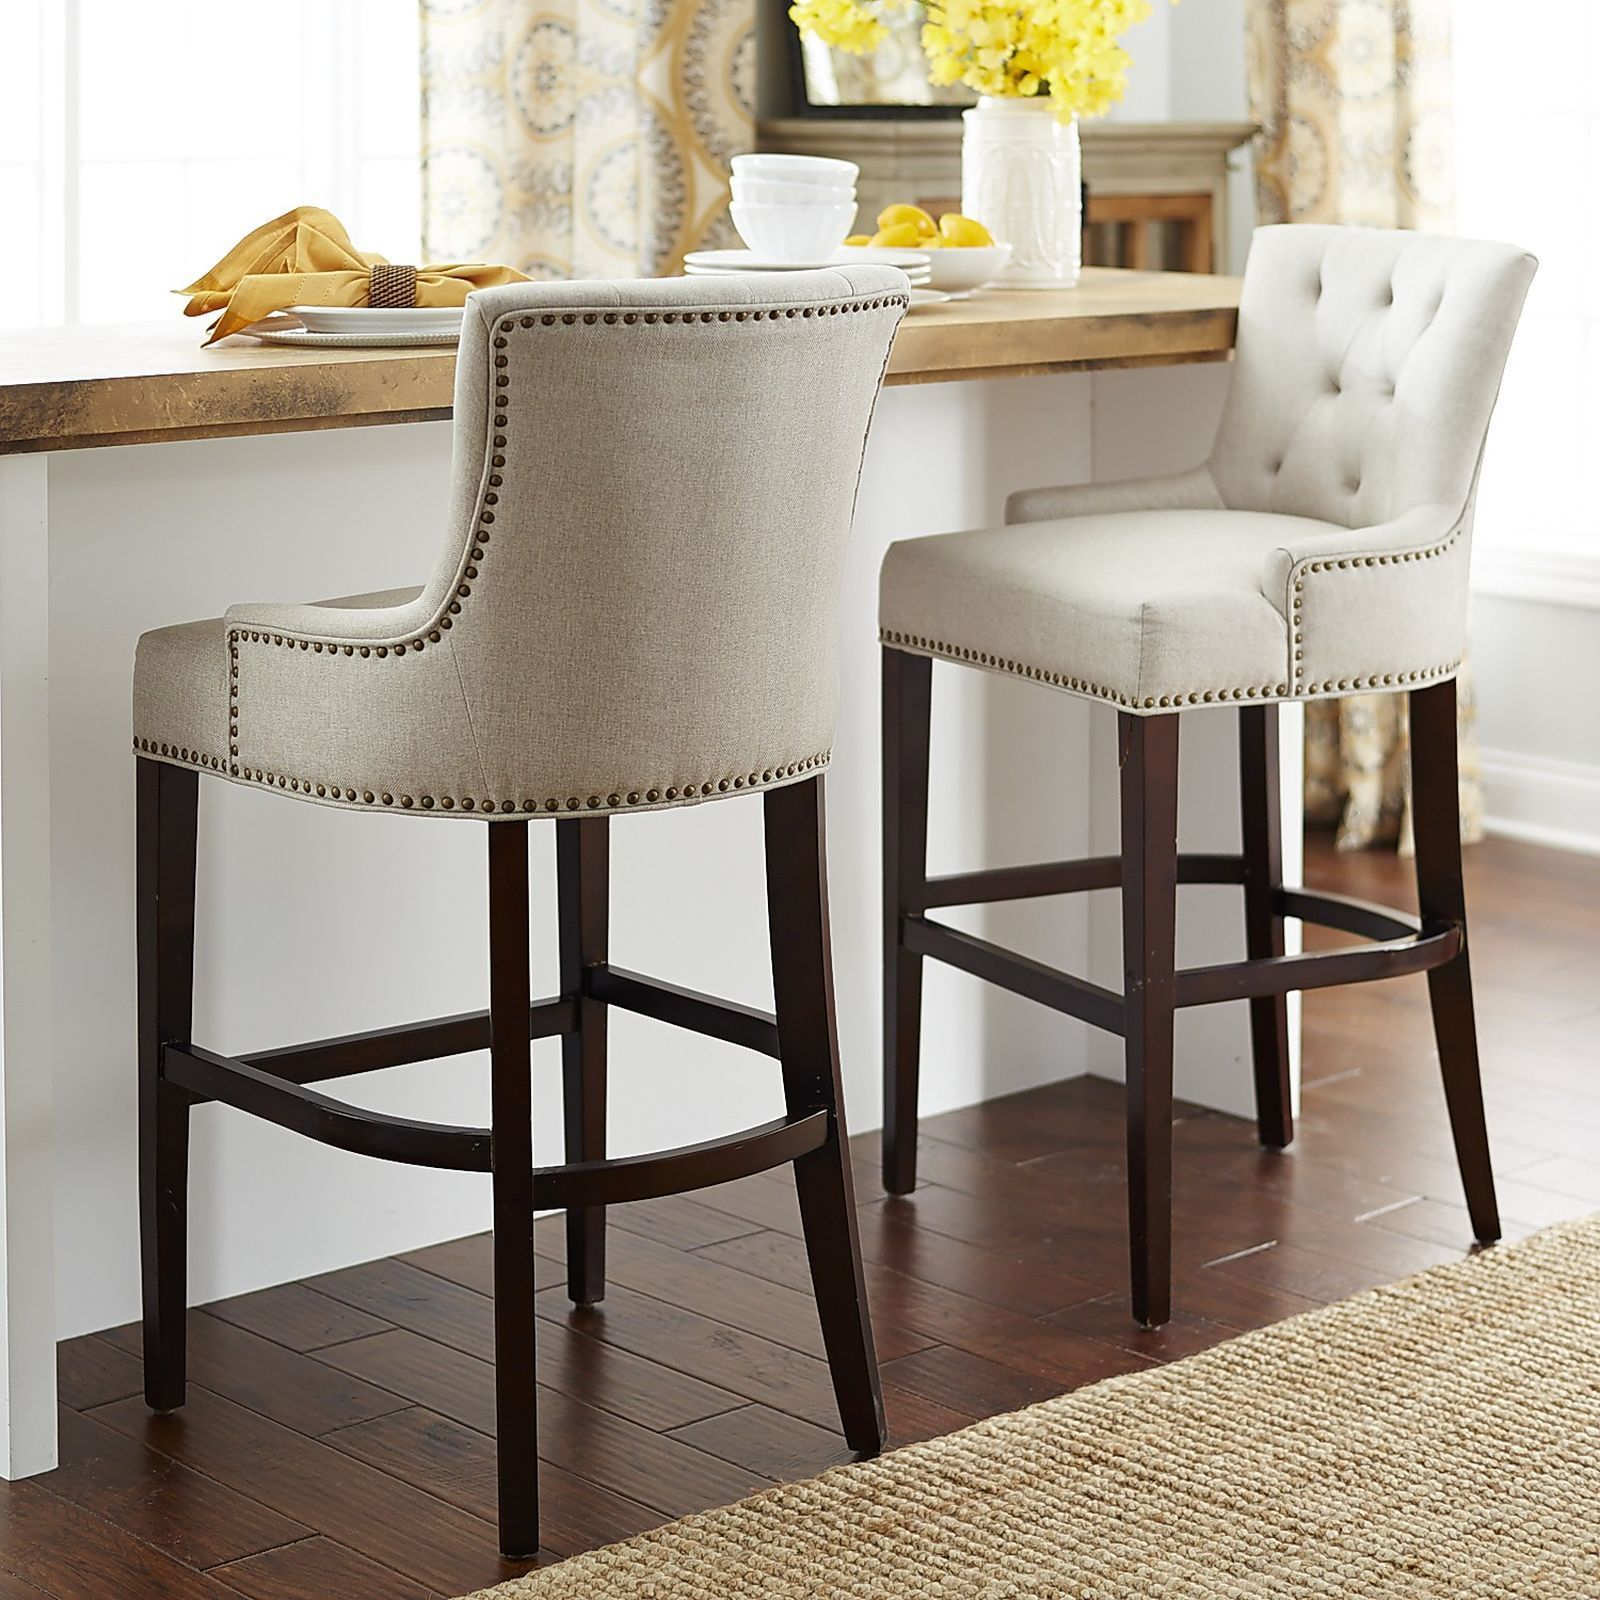 our ava stools offer a most elegant perch classic